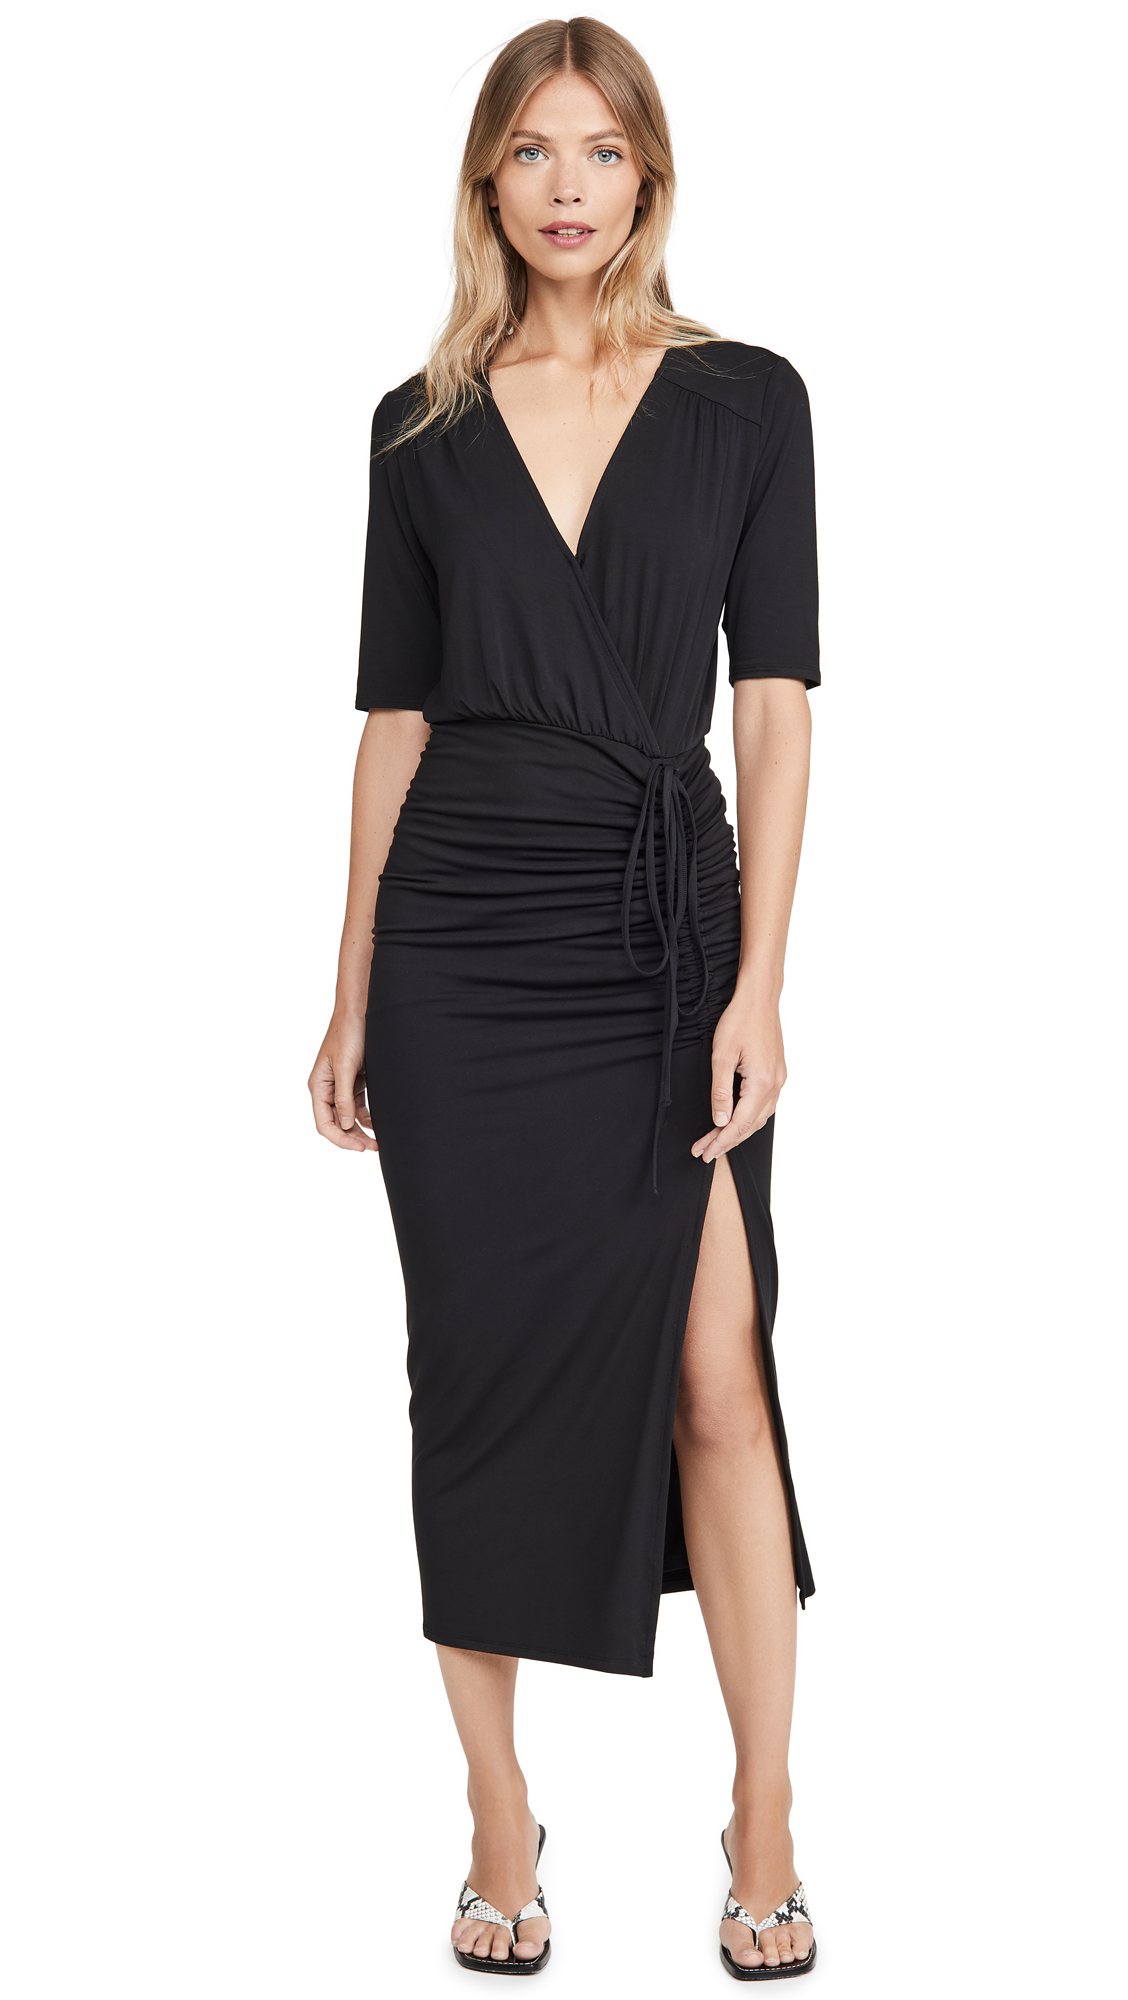 Veronica Beard Jean Mariposa Dress - 60% Off Sale